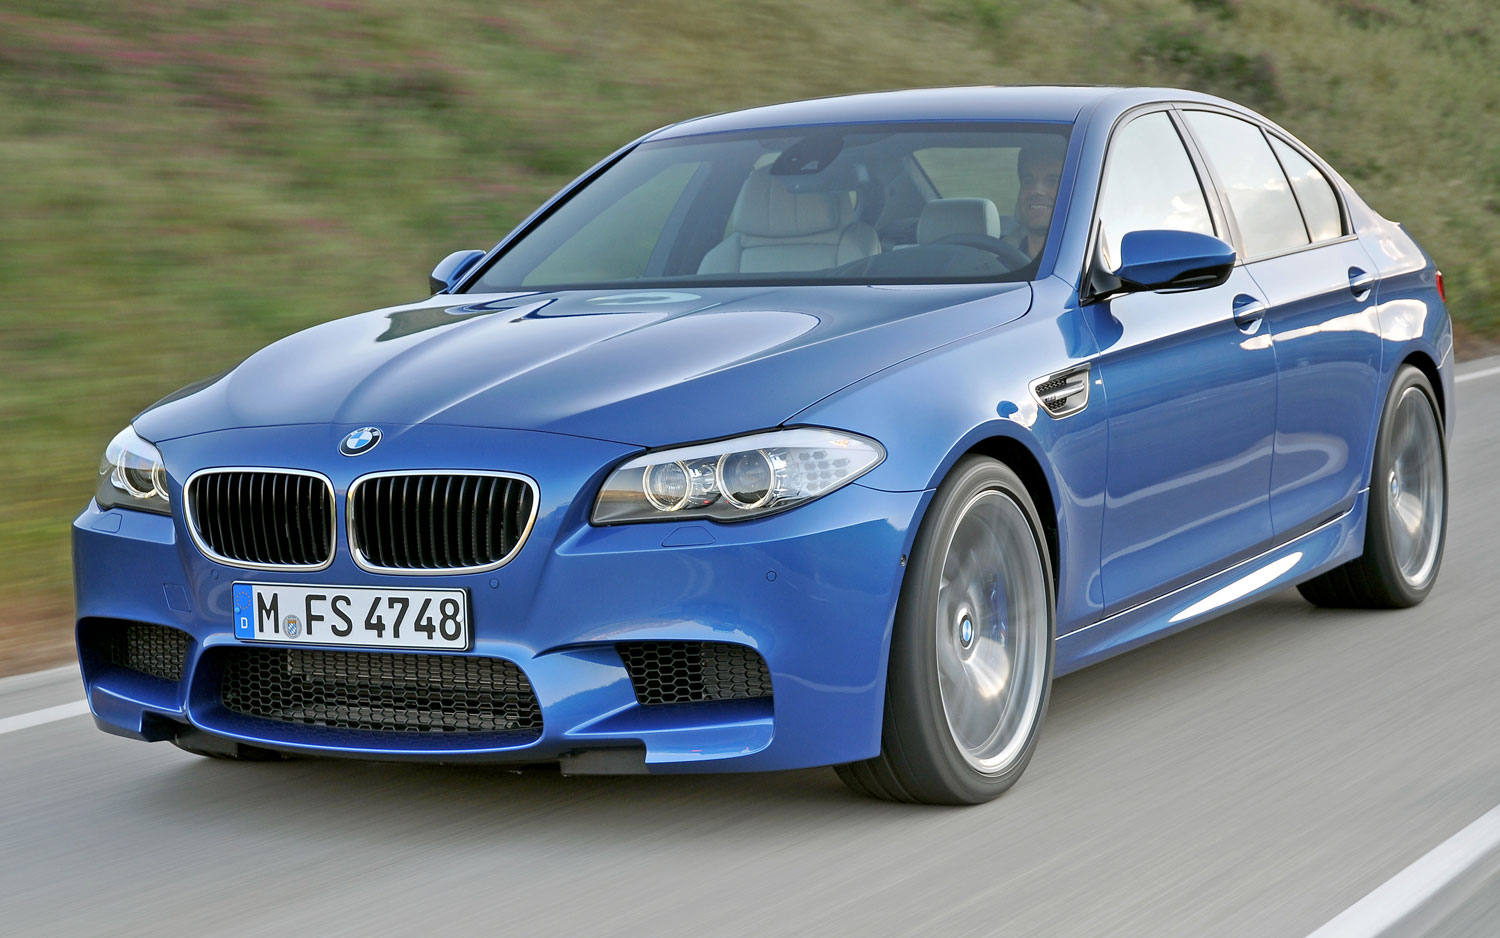 Priced Bmw M5 M6 X6 M 6 Series Gran Coupe Msrps Revealed Motor